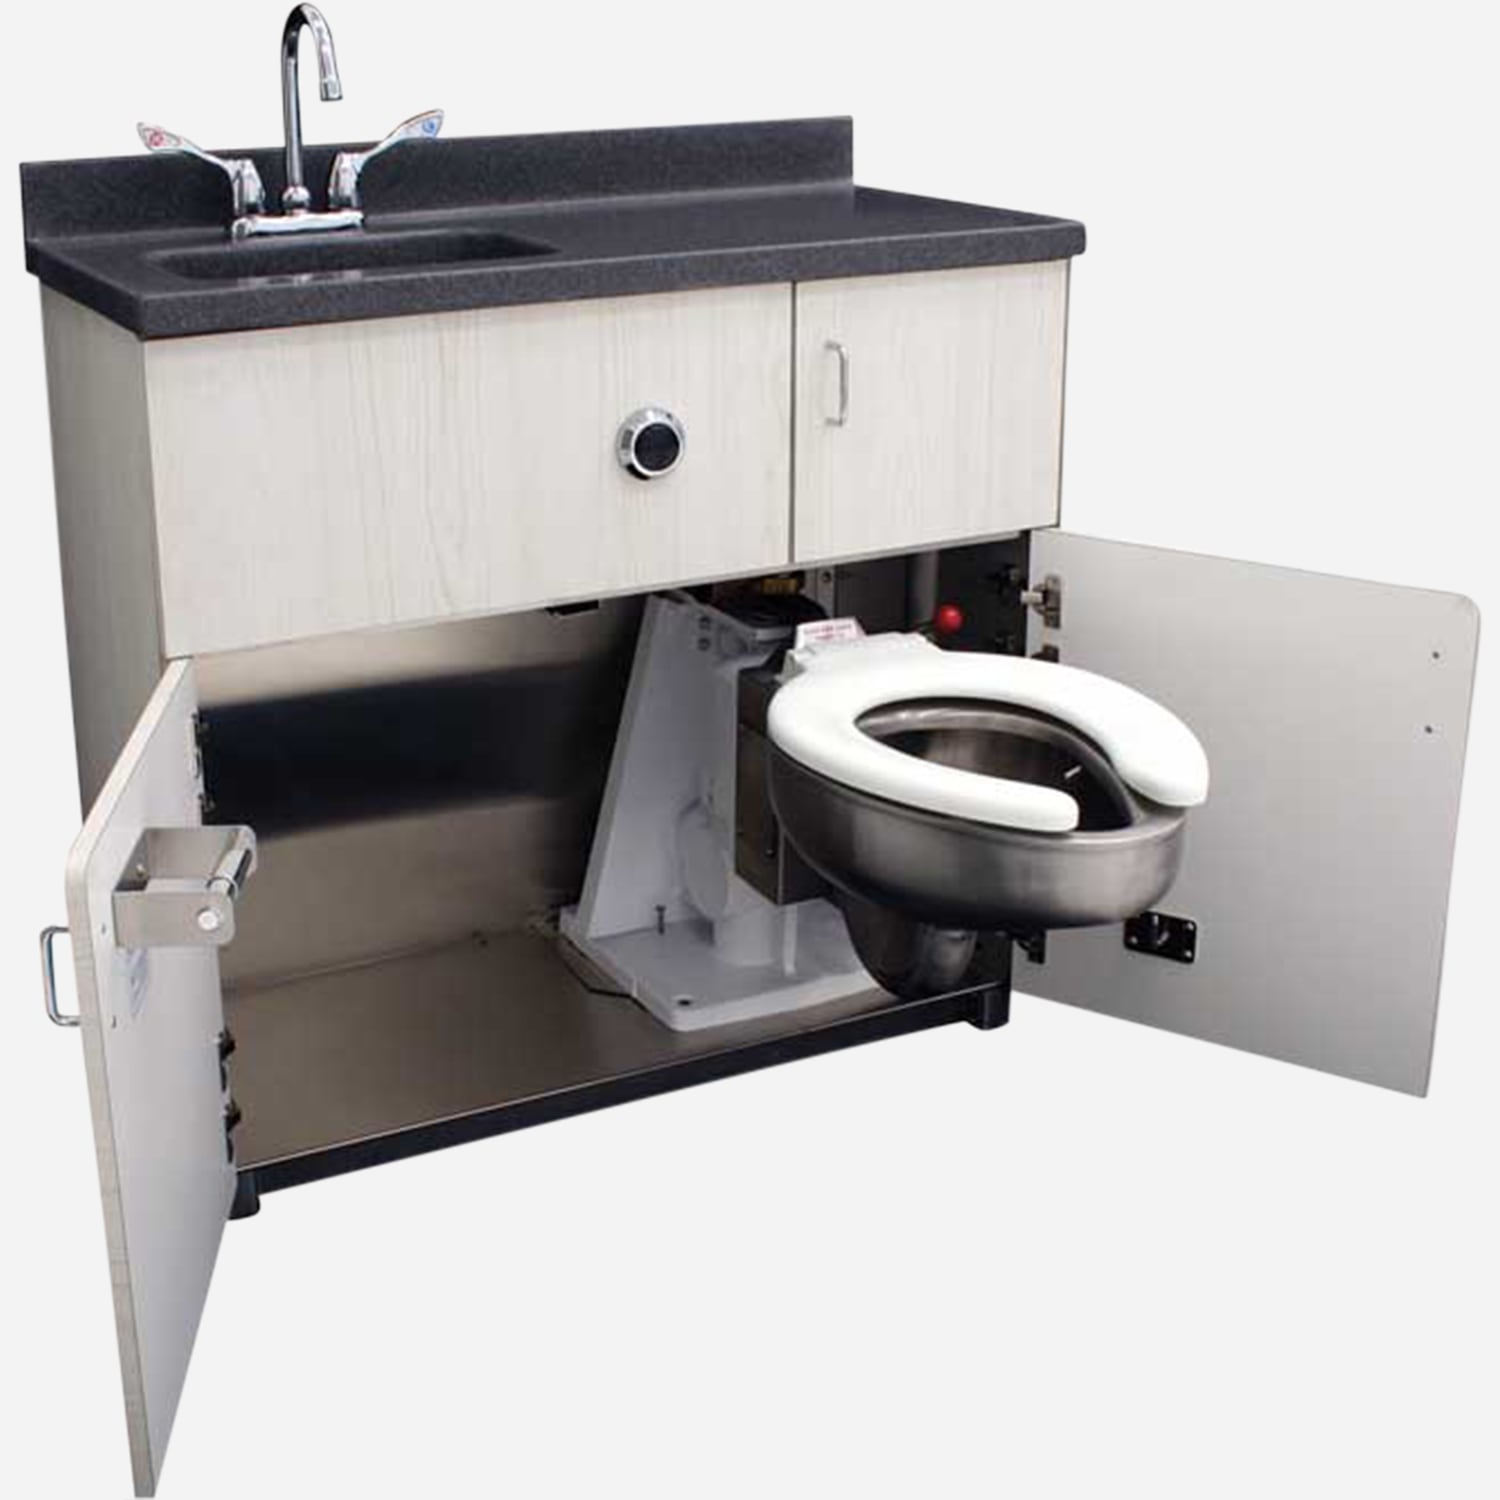 Side Waste Outlet, Free Standing Cabinet, Pivoting Toilet, Rectangular  Lavatory